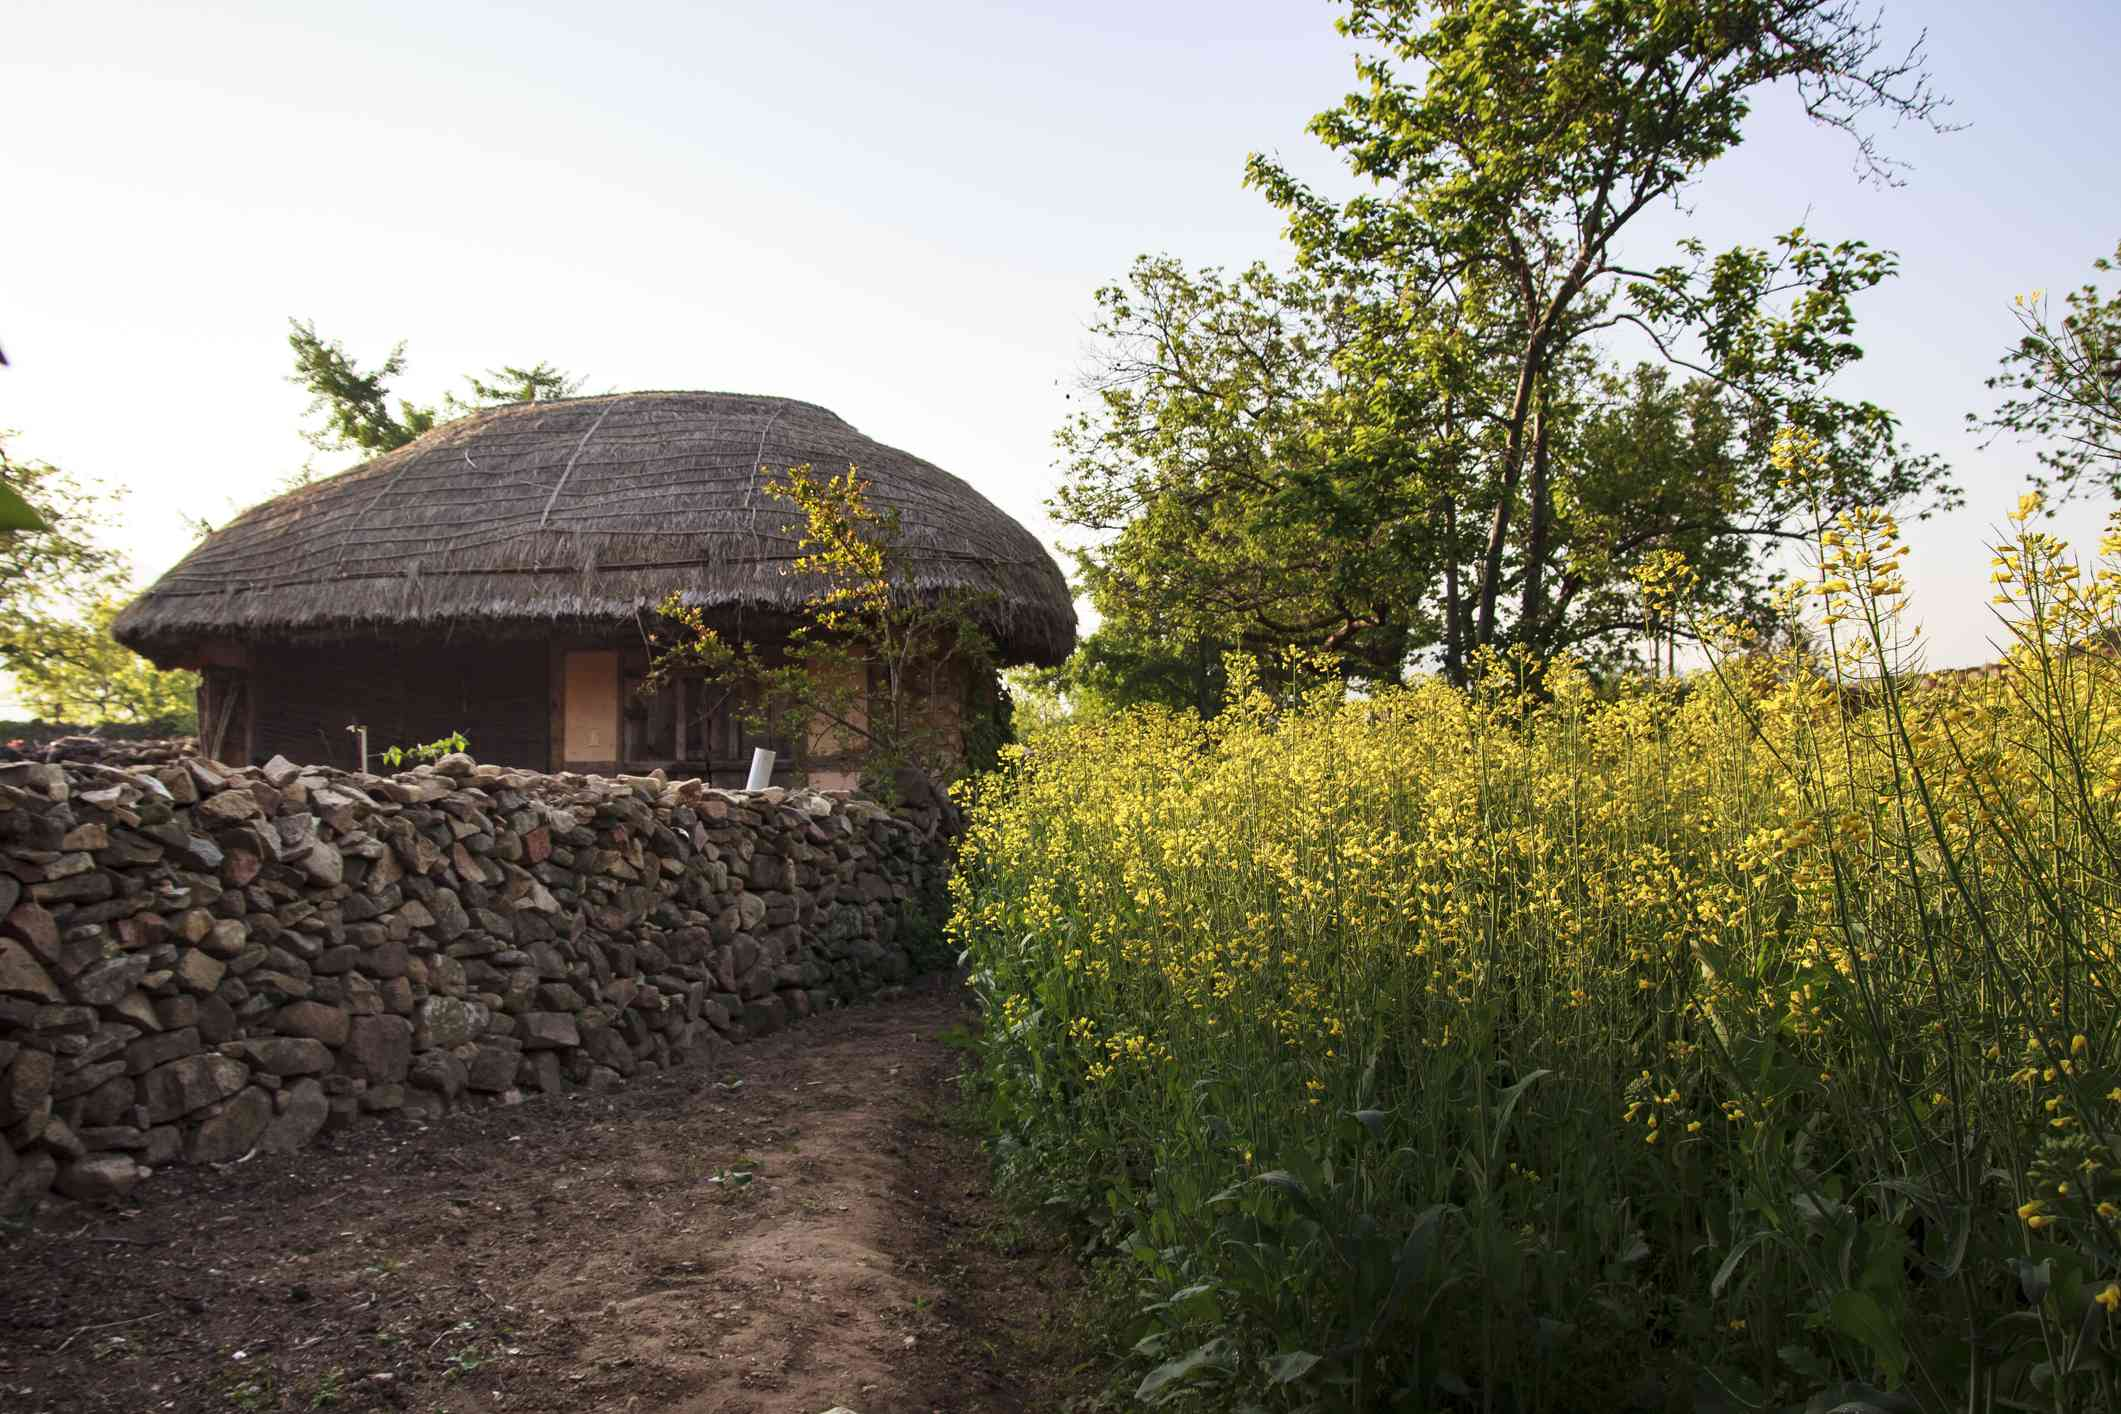 Thatched House & Rapeseeds